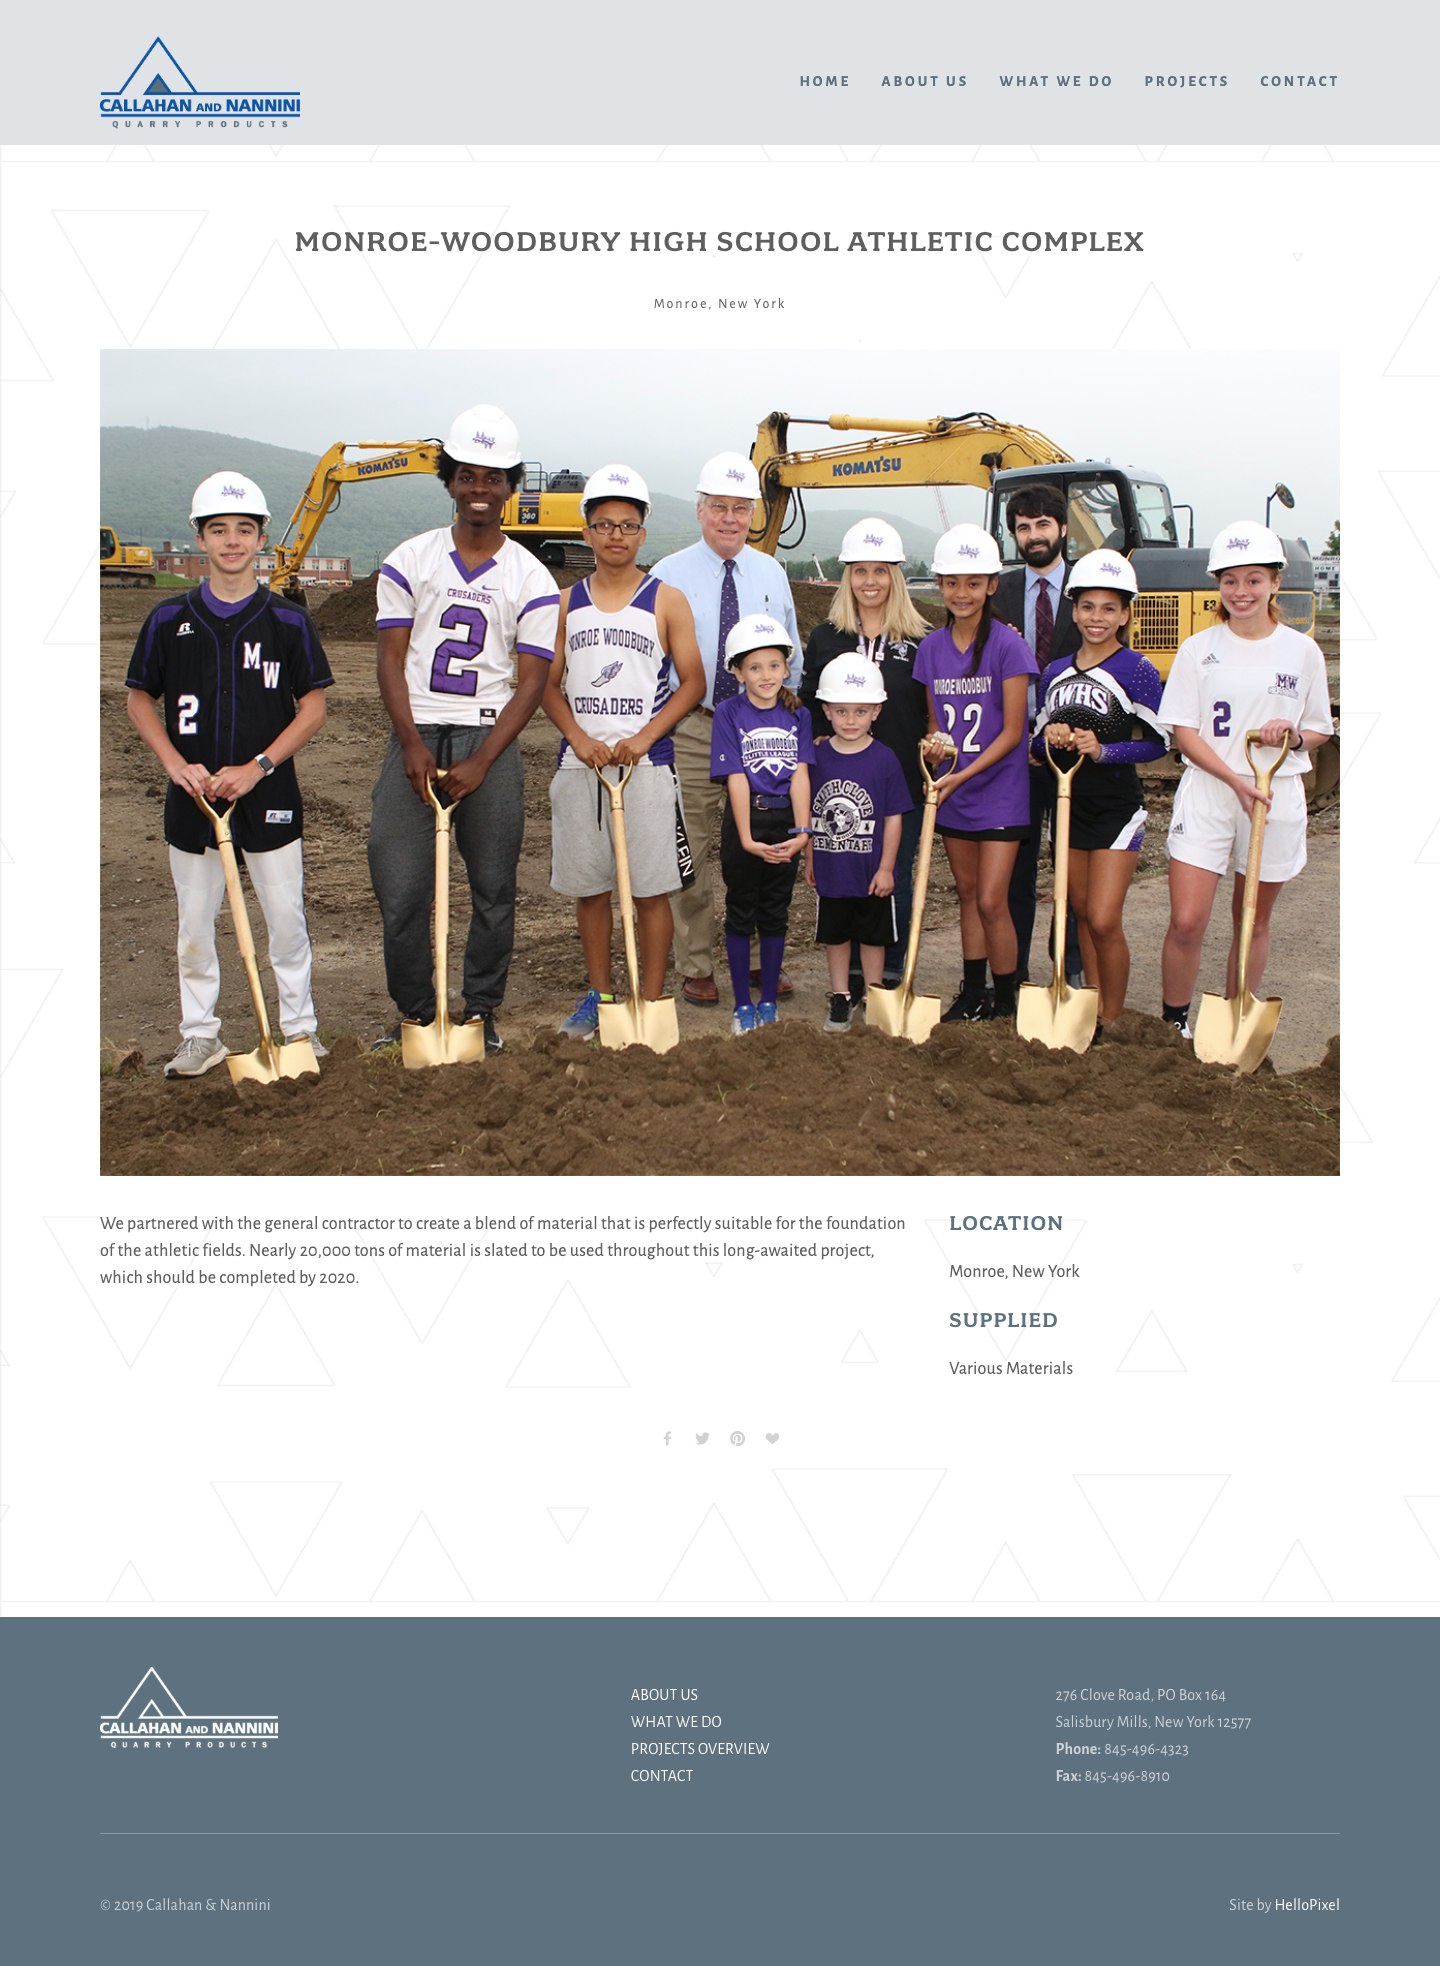 screencapture-plum-cymbals-f7jd-squarespace-projects-all-monroe-woodbury-high-school-athletic-complex-2019-08-14-10_53_23.png